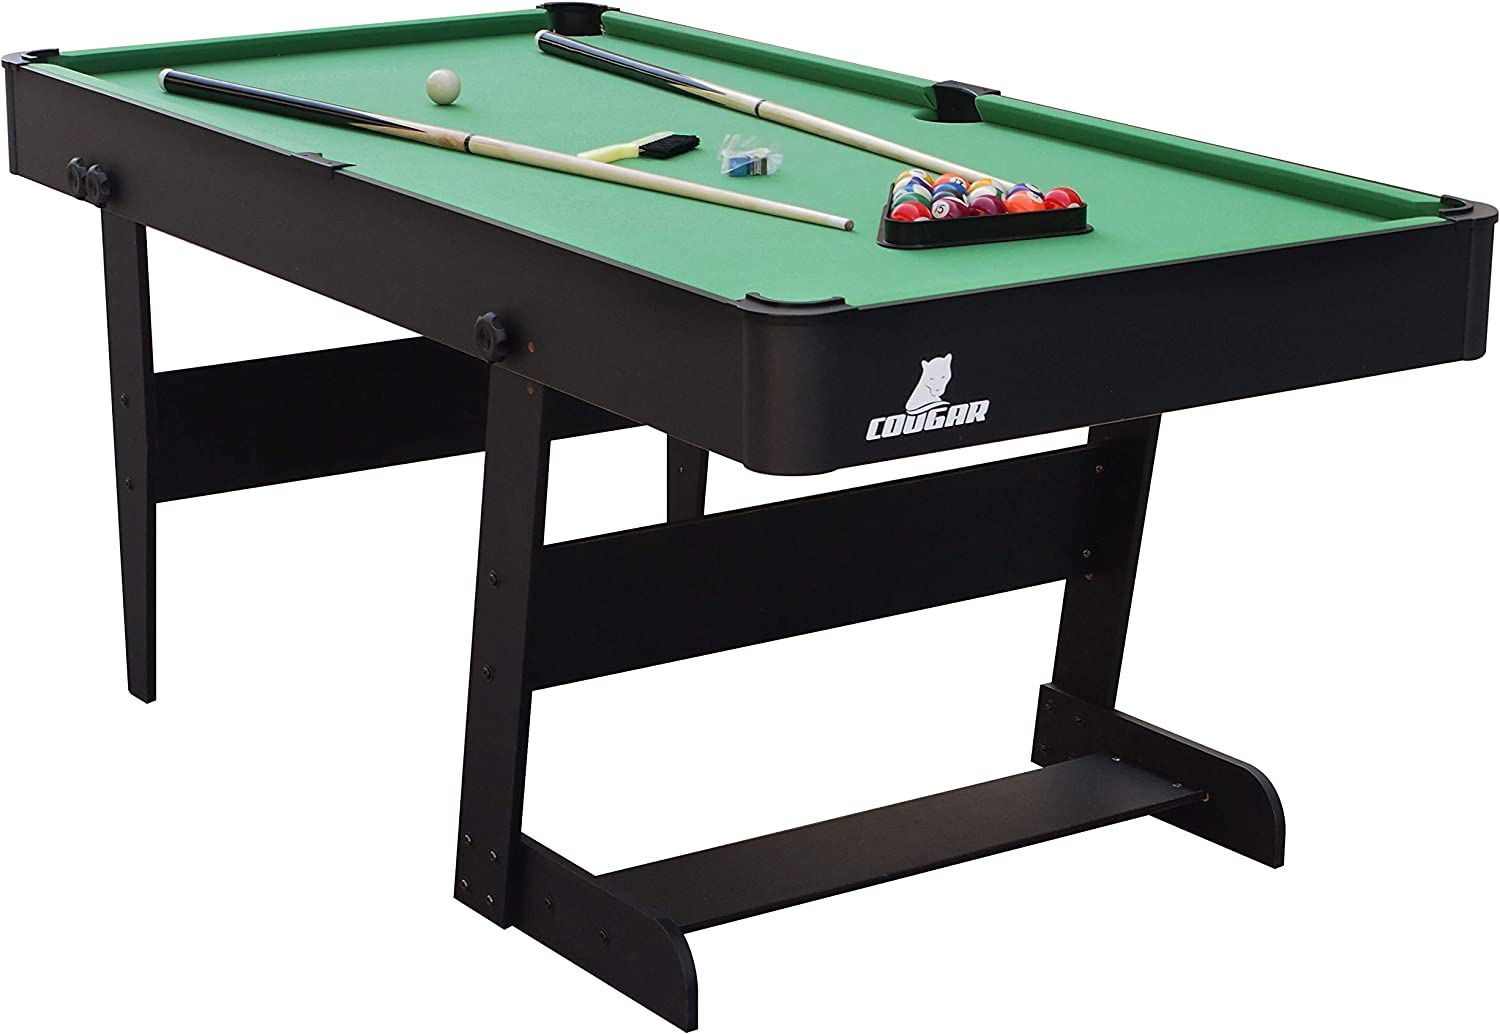 COUGAR A040.201.00 Mesa de Billar Pool Billiards Table - Mesas de Billar (Pool Billiards Table, Negro, Verde, MDF, 5 año(s), Niños y Adultos, China): Amazon.es: Deportes y aire libre